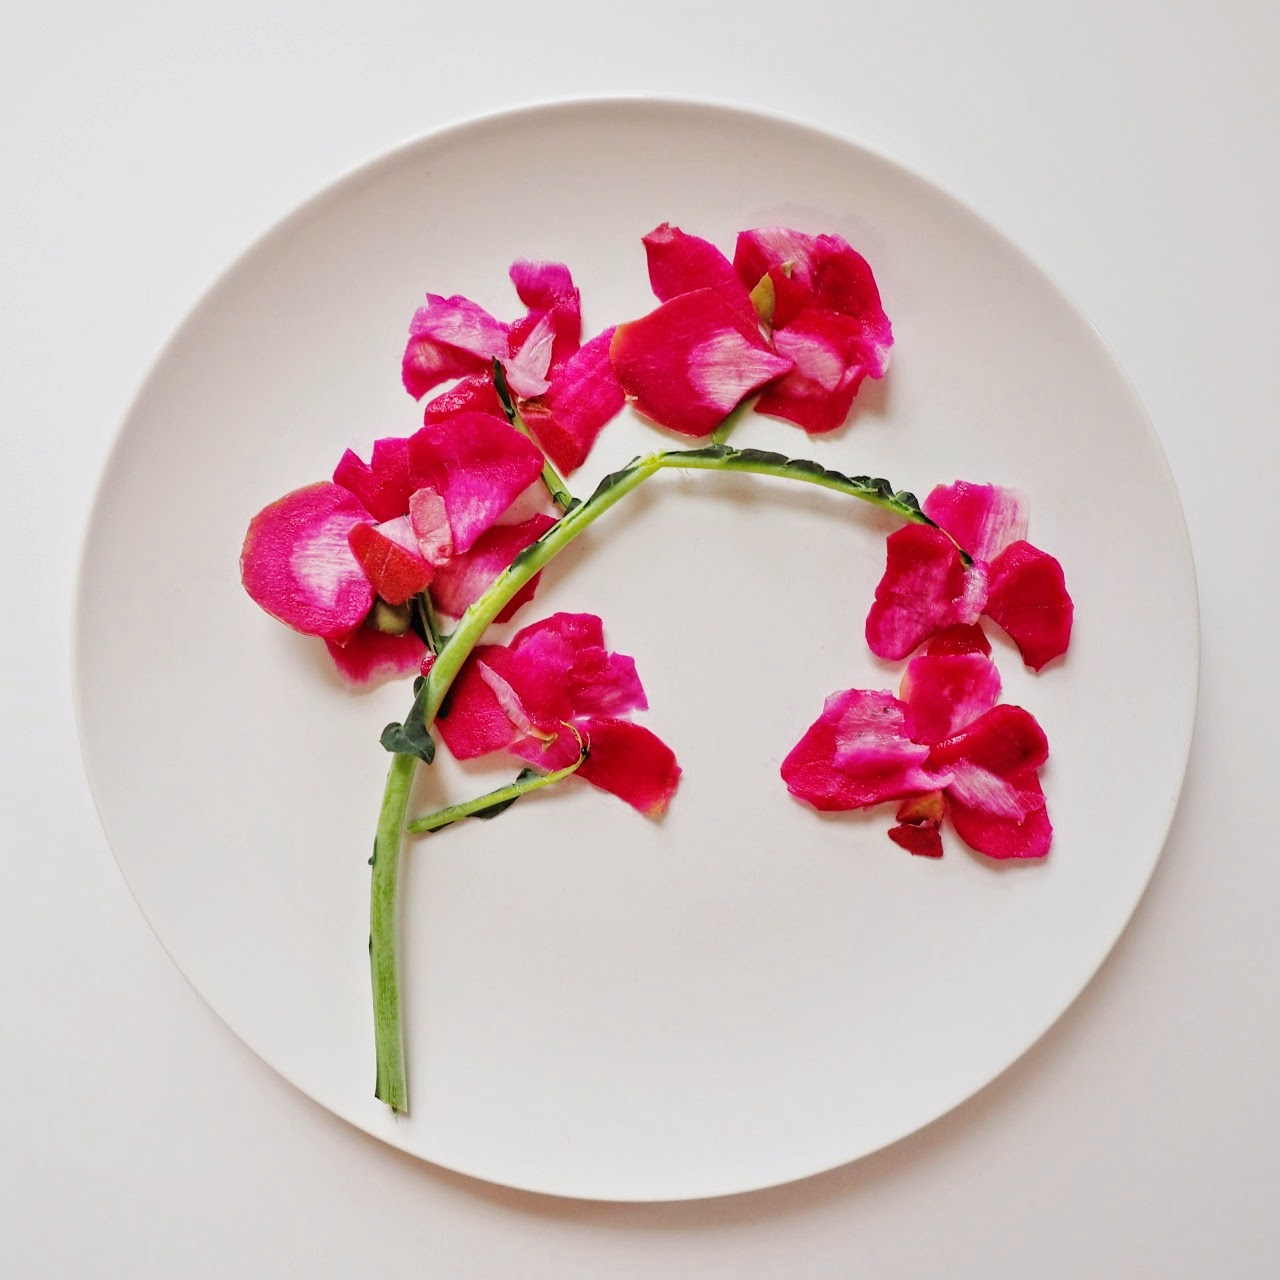 10-Pink-Orchid-Lauren-Purnell-Love-Art-and Love-for-Food-www-designstack-co